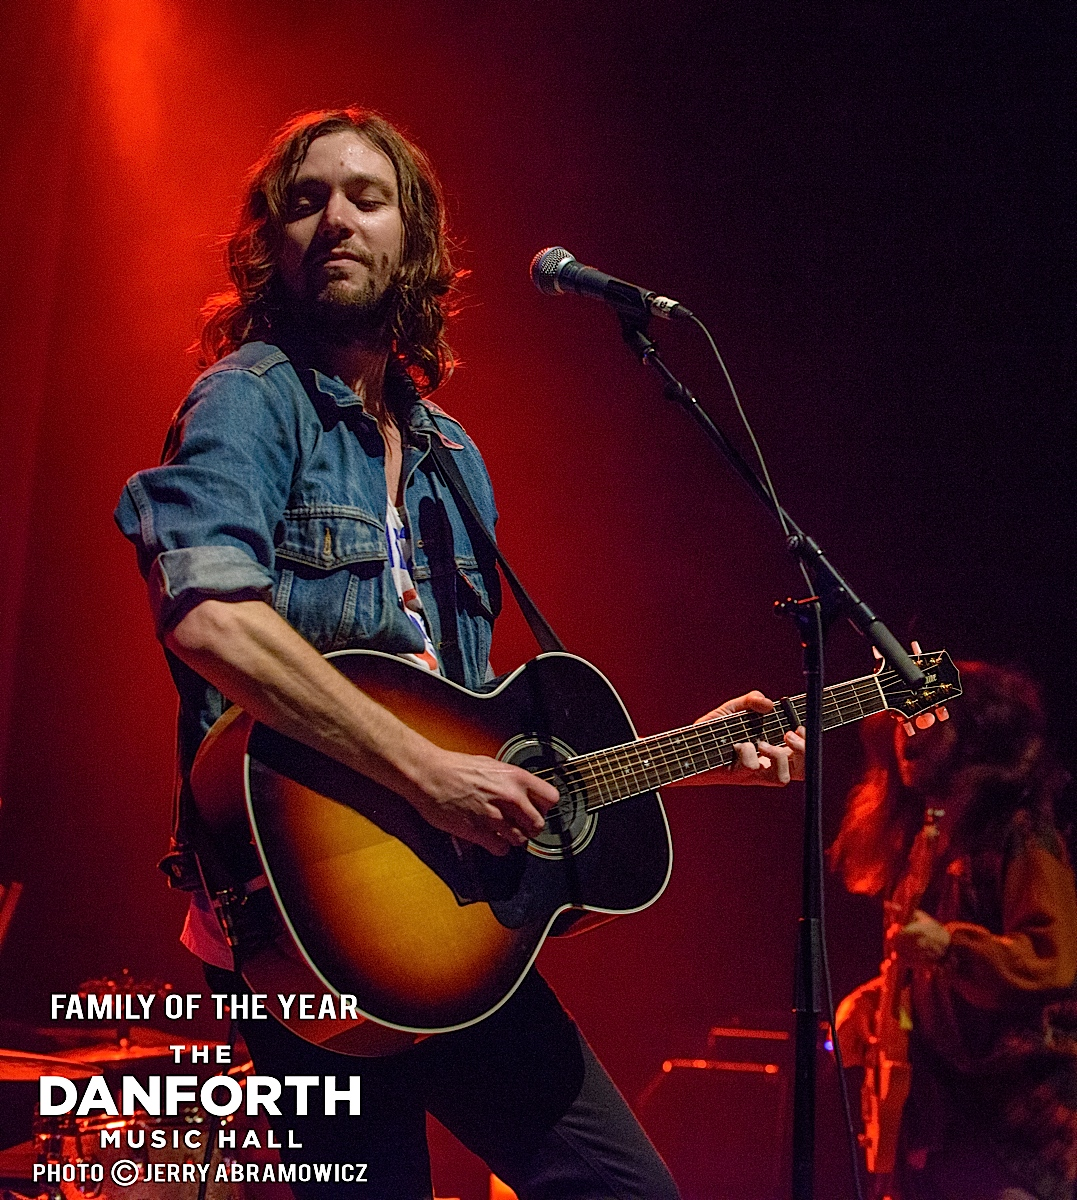 20131004 Family of the Year at The Danforth Music Hall Toronto 0249